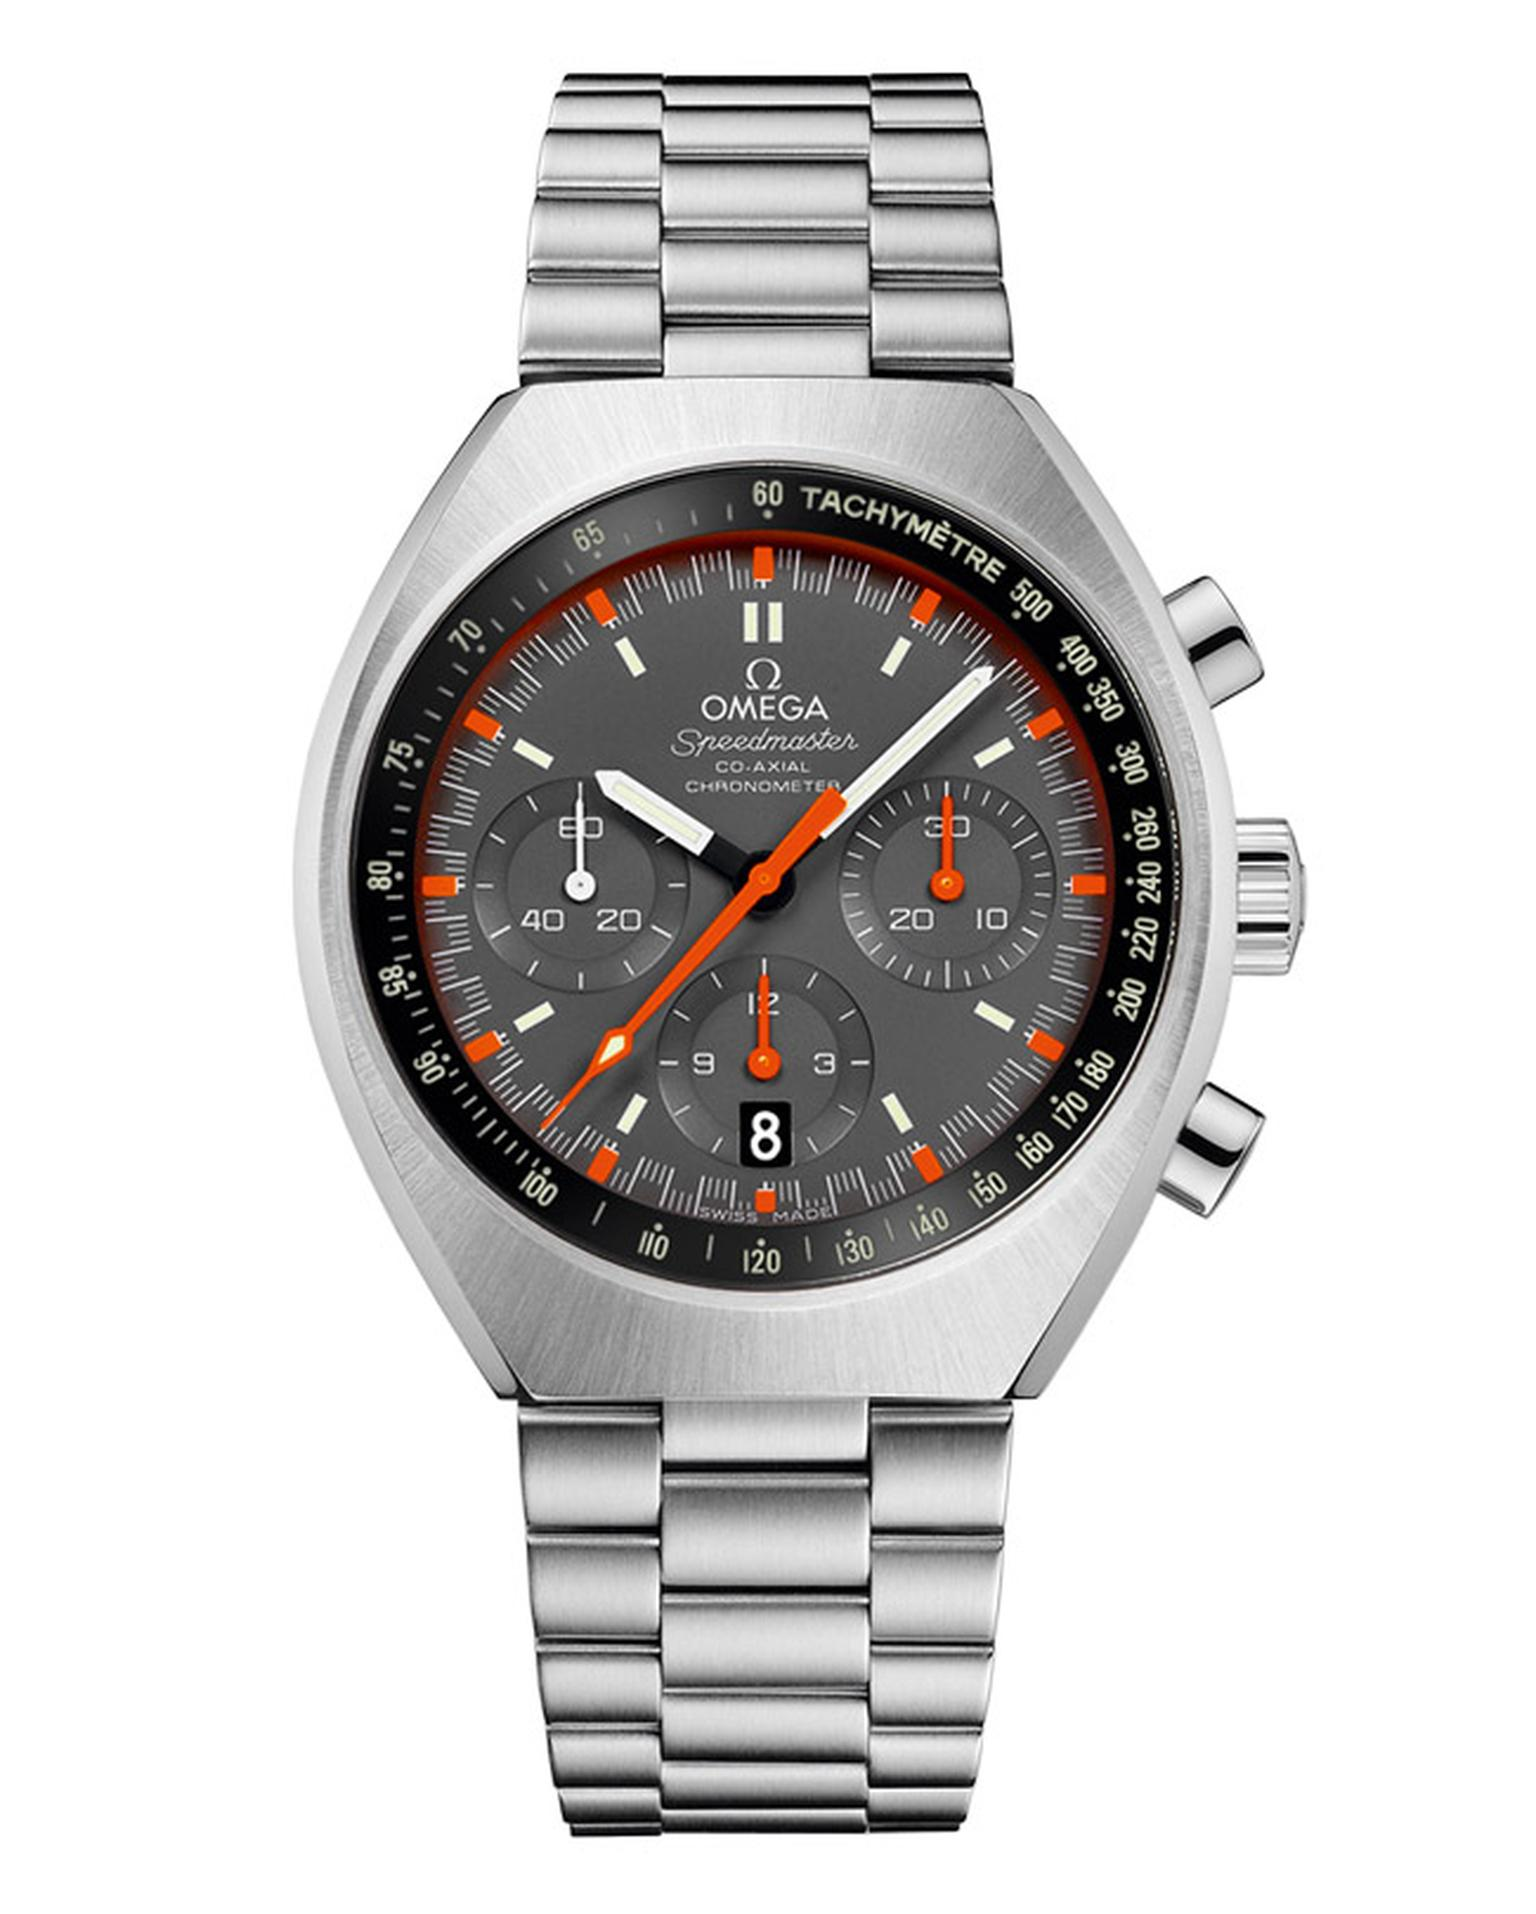 Omega-Speedmaster-Mark-II-Main